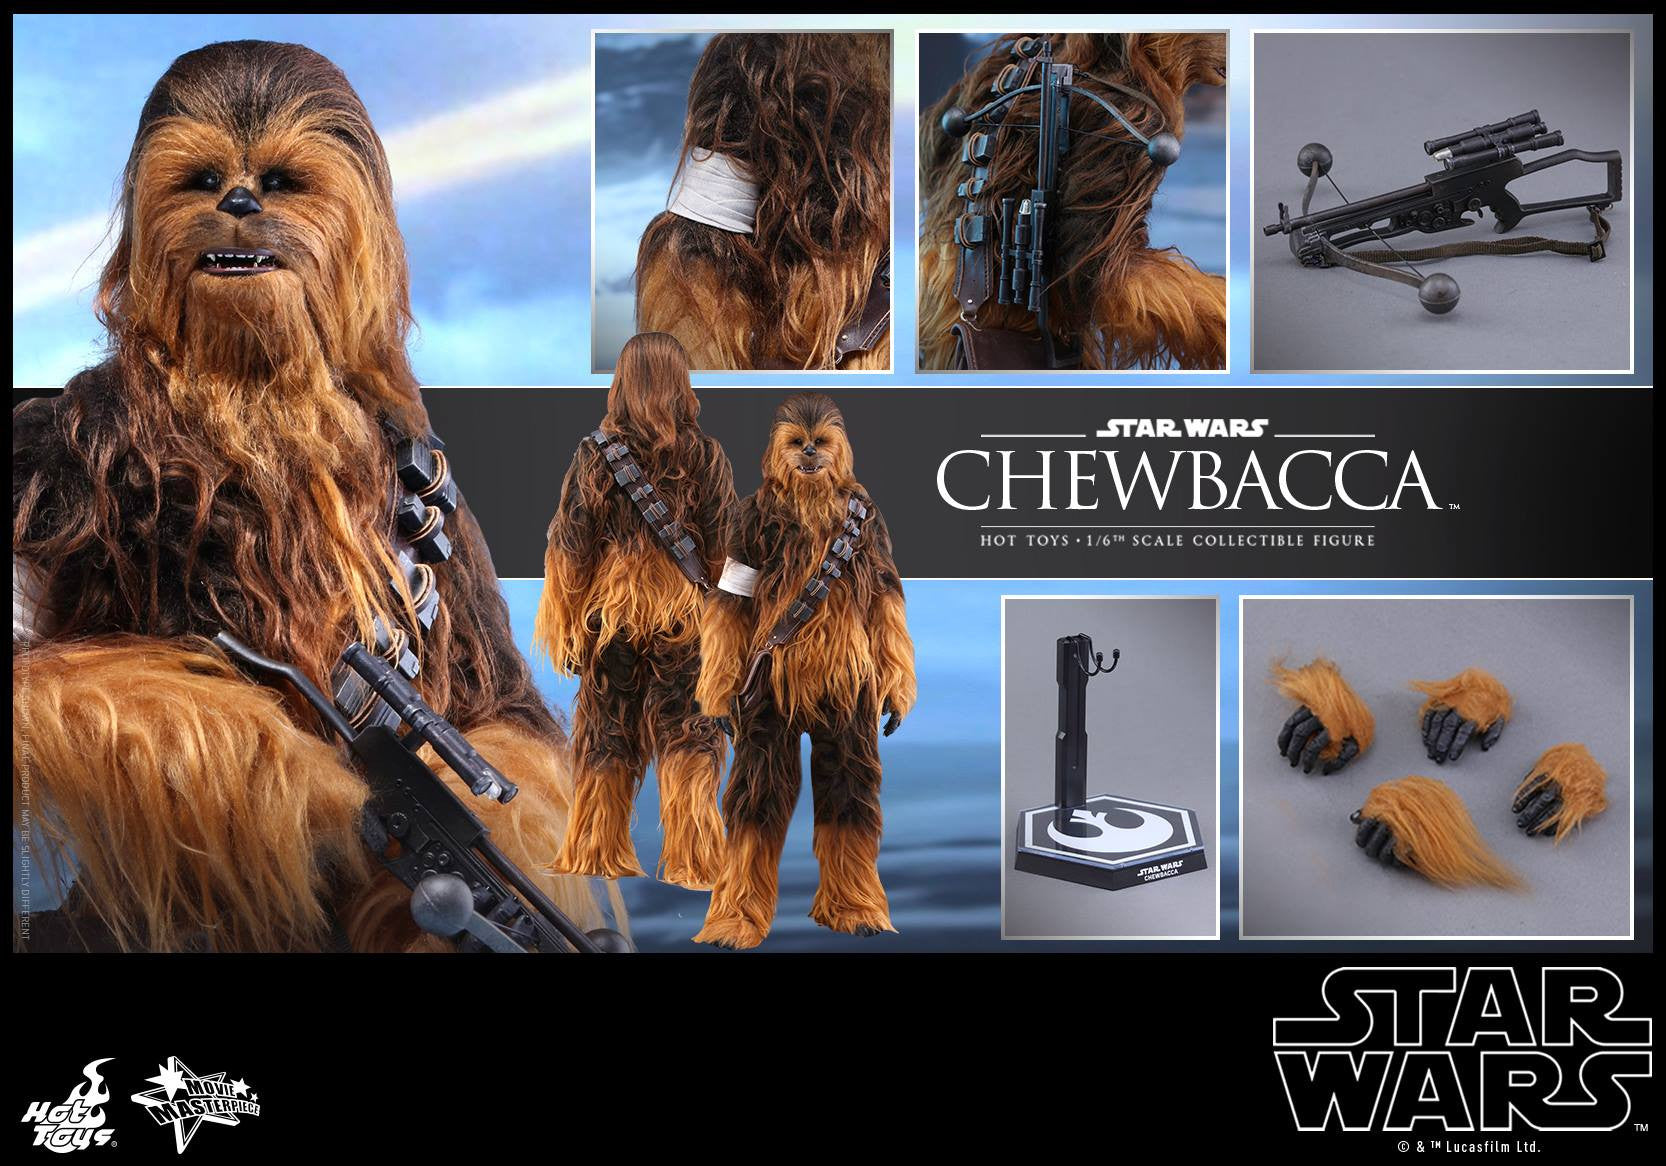 Hot Toys - MMS375 - Star Wars: The Force Awakens - Chewbacca - Marvelous Toys - 12